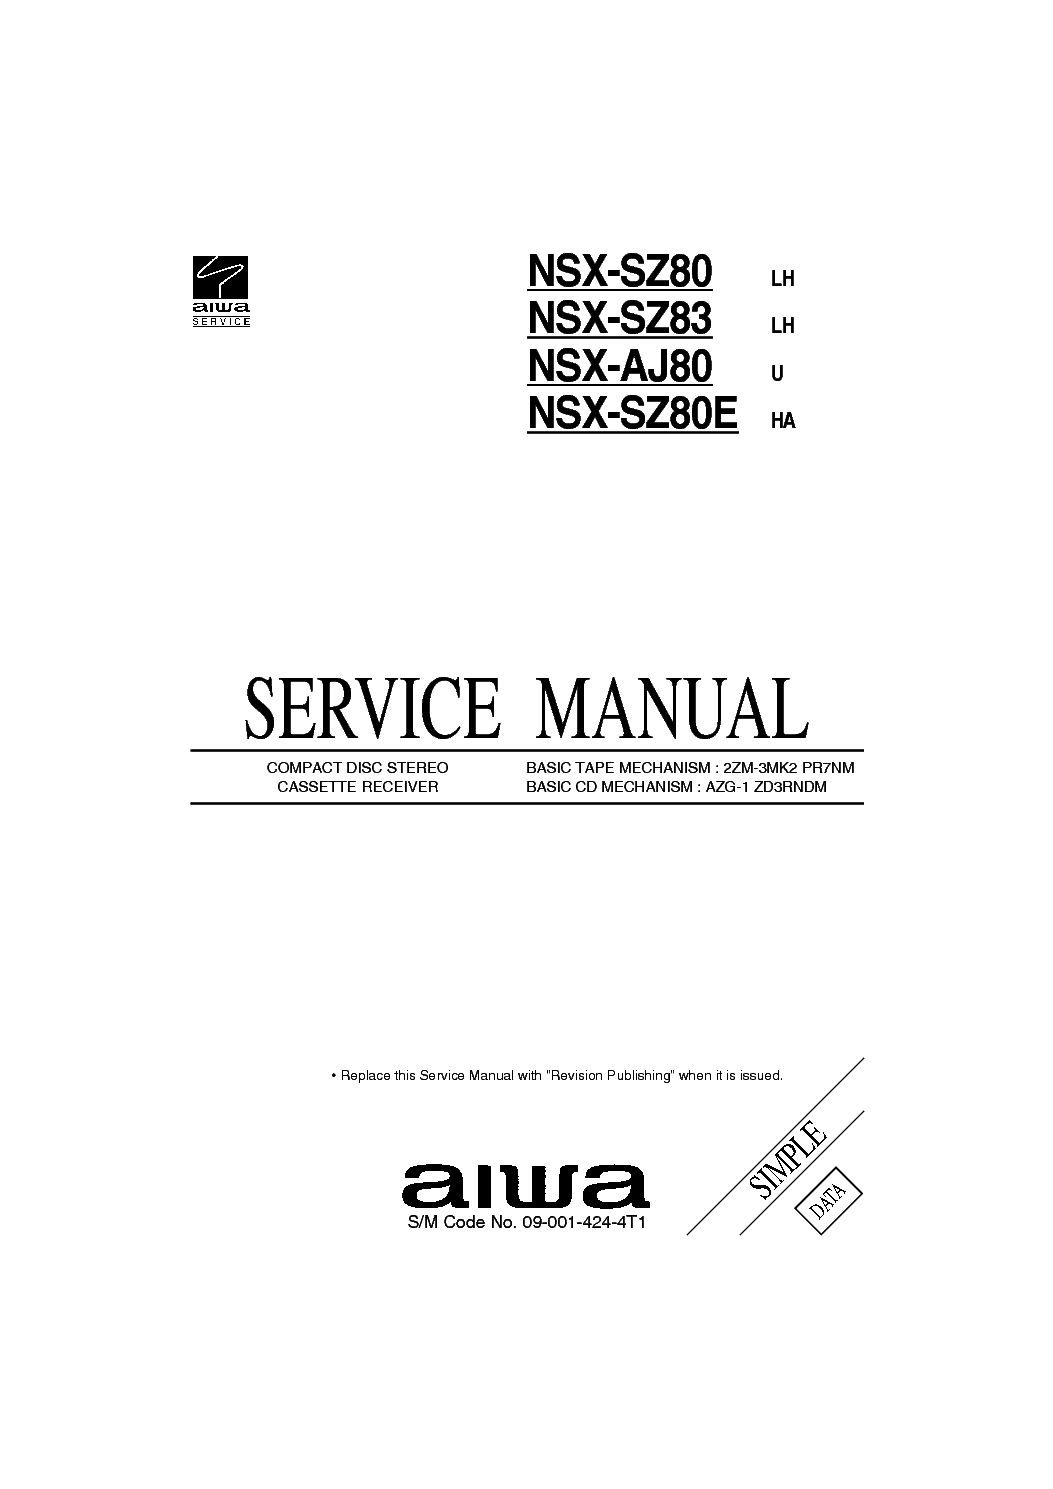 AIWA NSX-SZ80,83 AJ83 Service Manual download, schematics